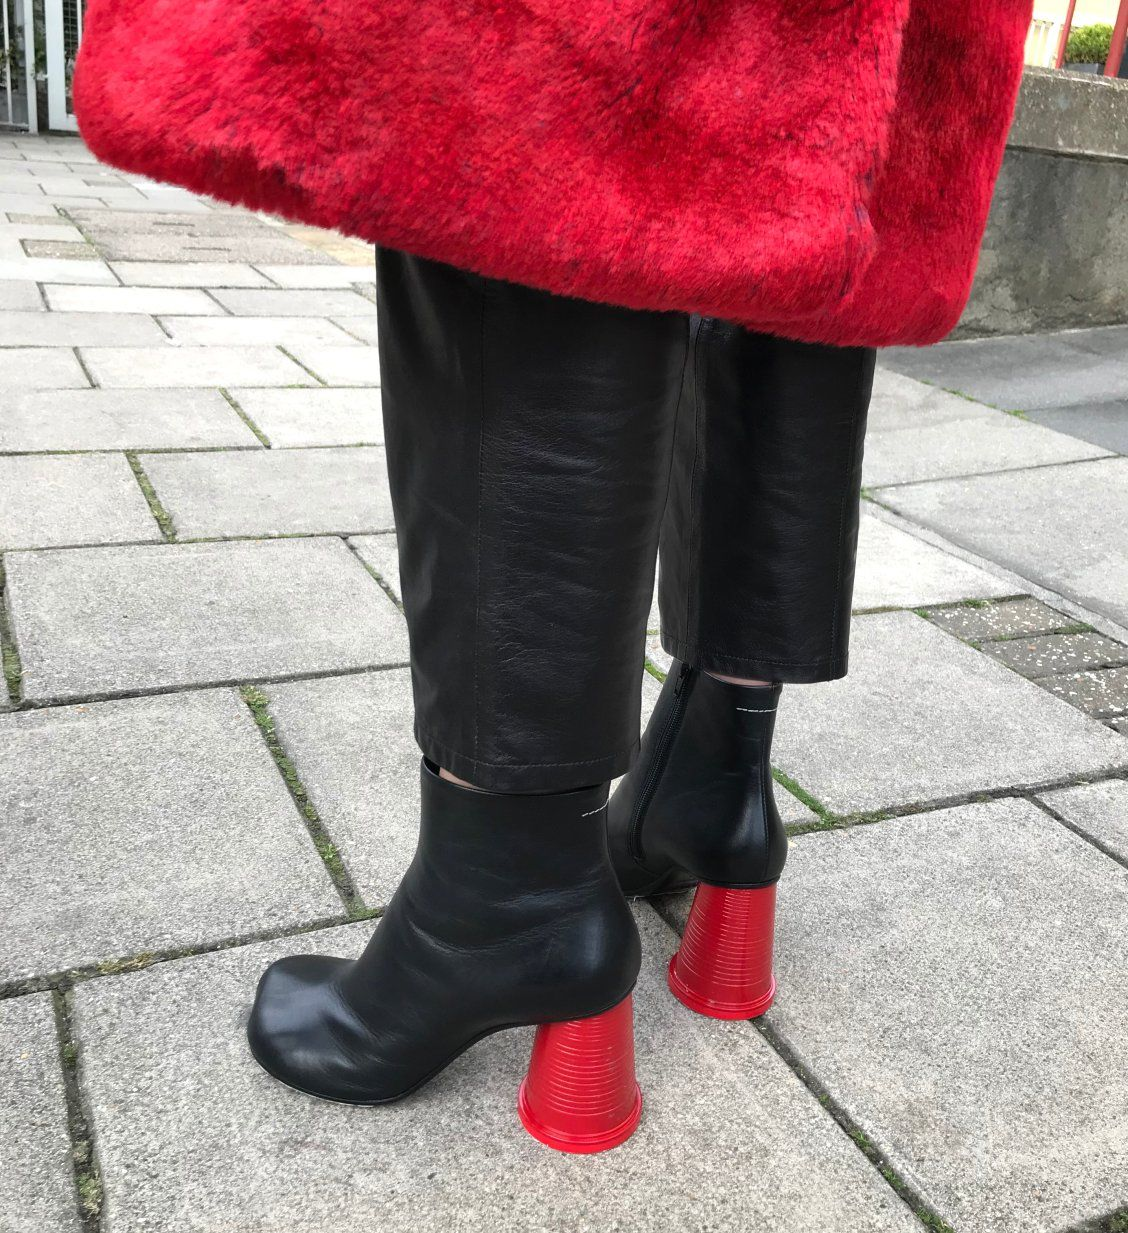 20182017 Boots Report Signature Womens Lannister Knee High Boot For Sale Online